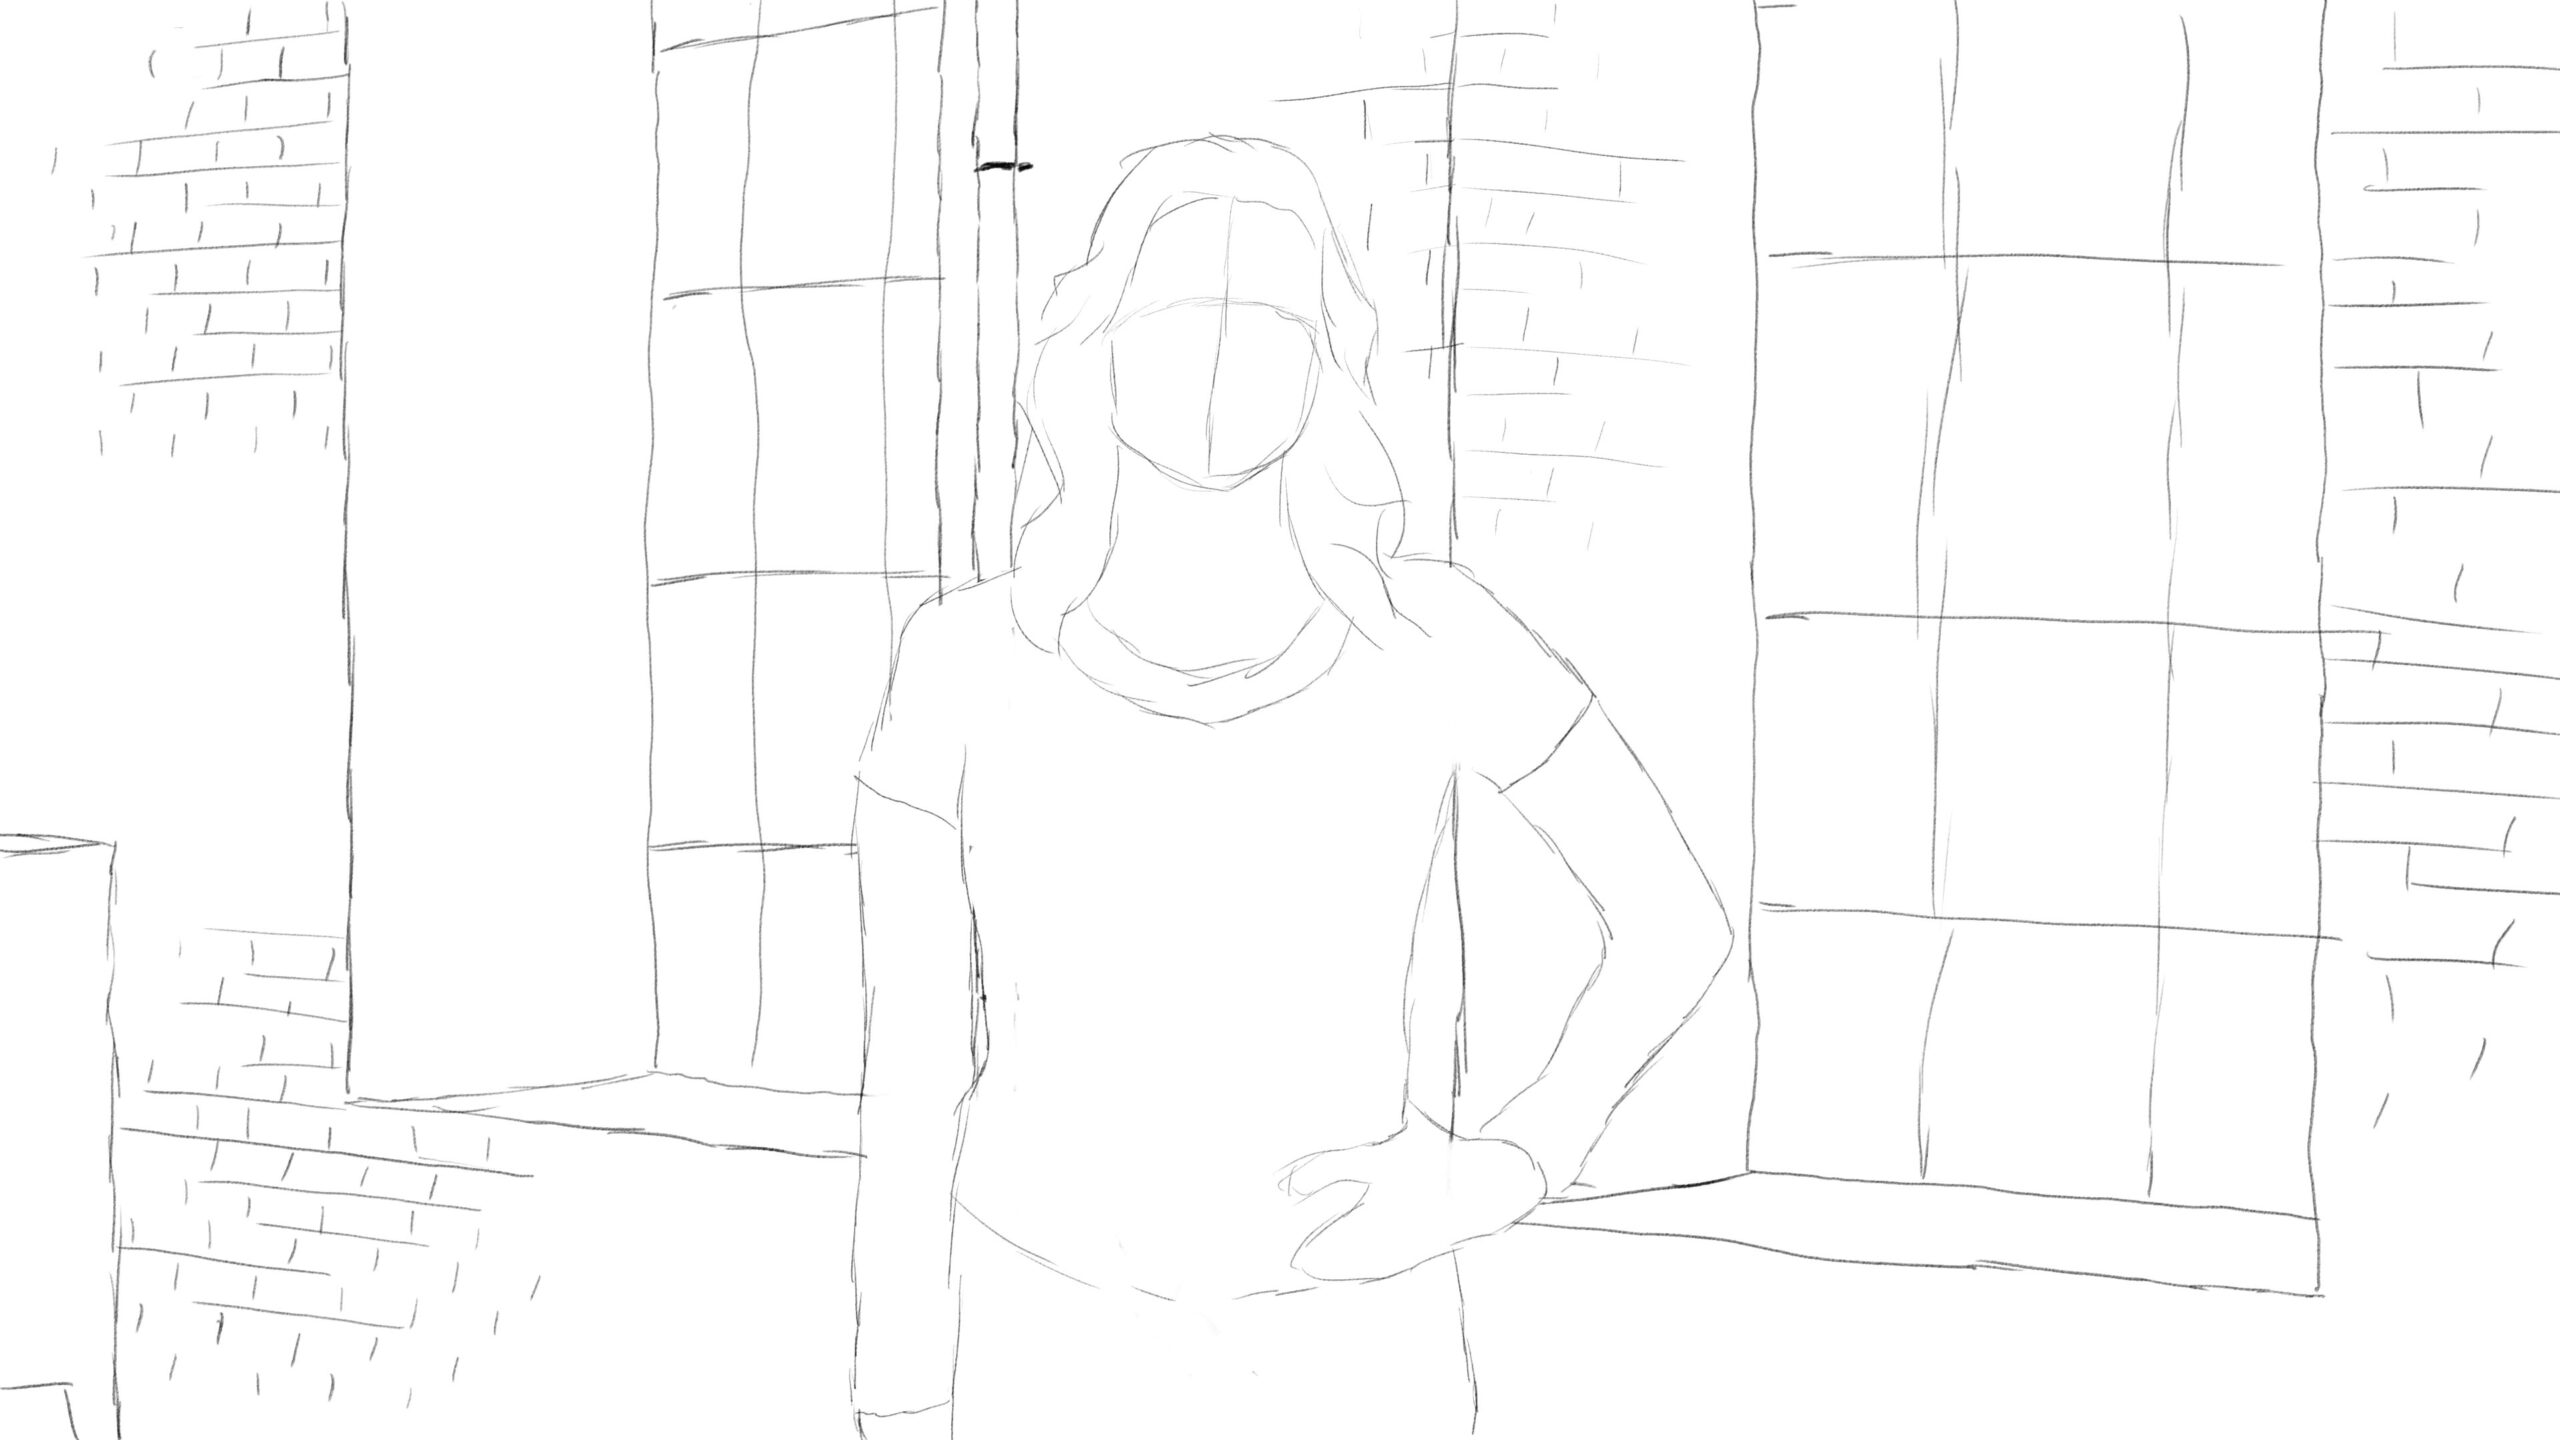 Pitney Bowes-RumbleOn concept art - center-view drawing of person in front of a garage window